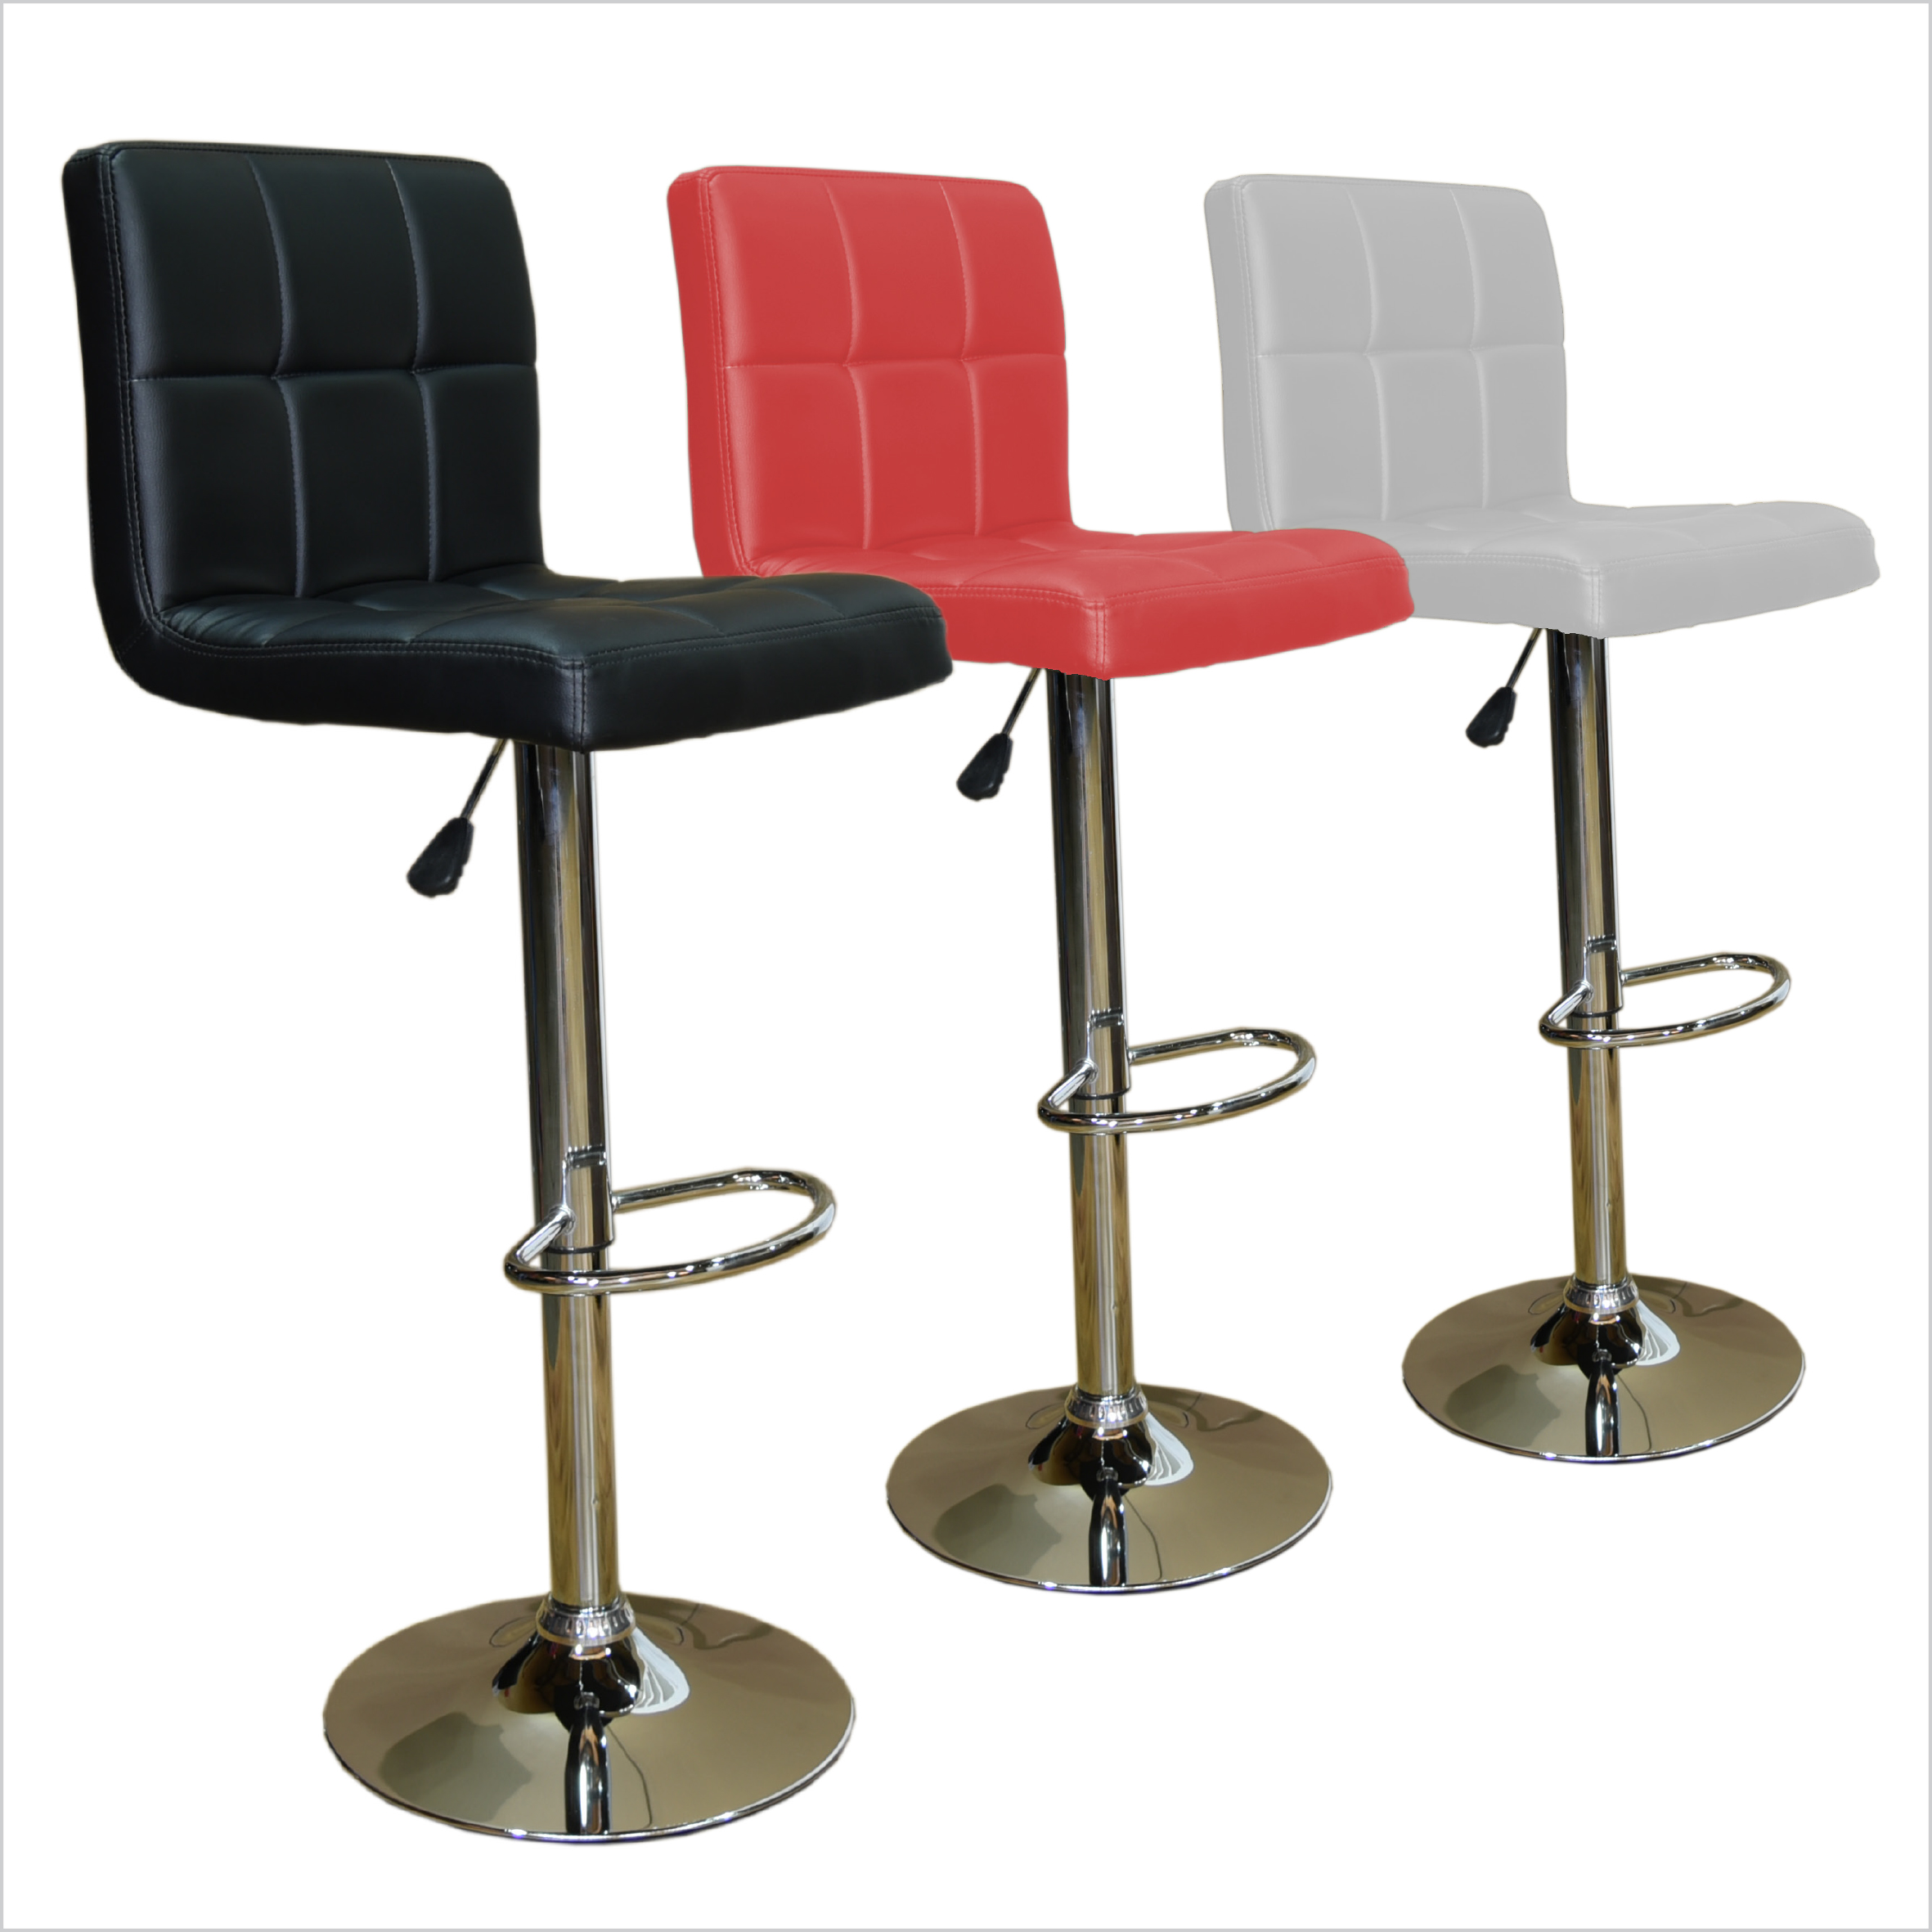 Chairs 628 Bar Stool For Sale In Johannesburg ID 283558666